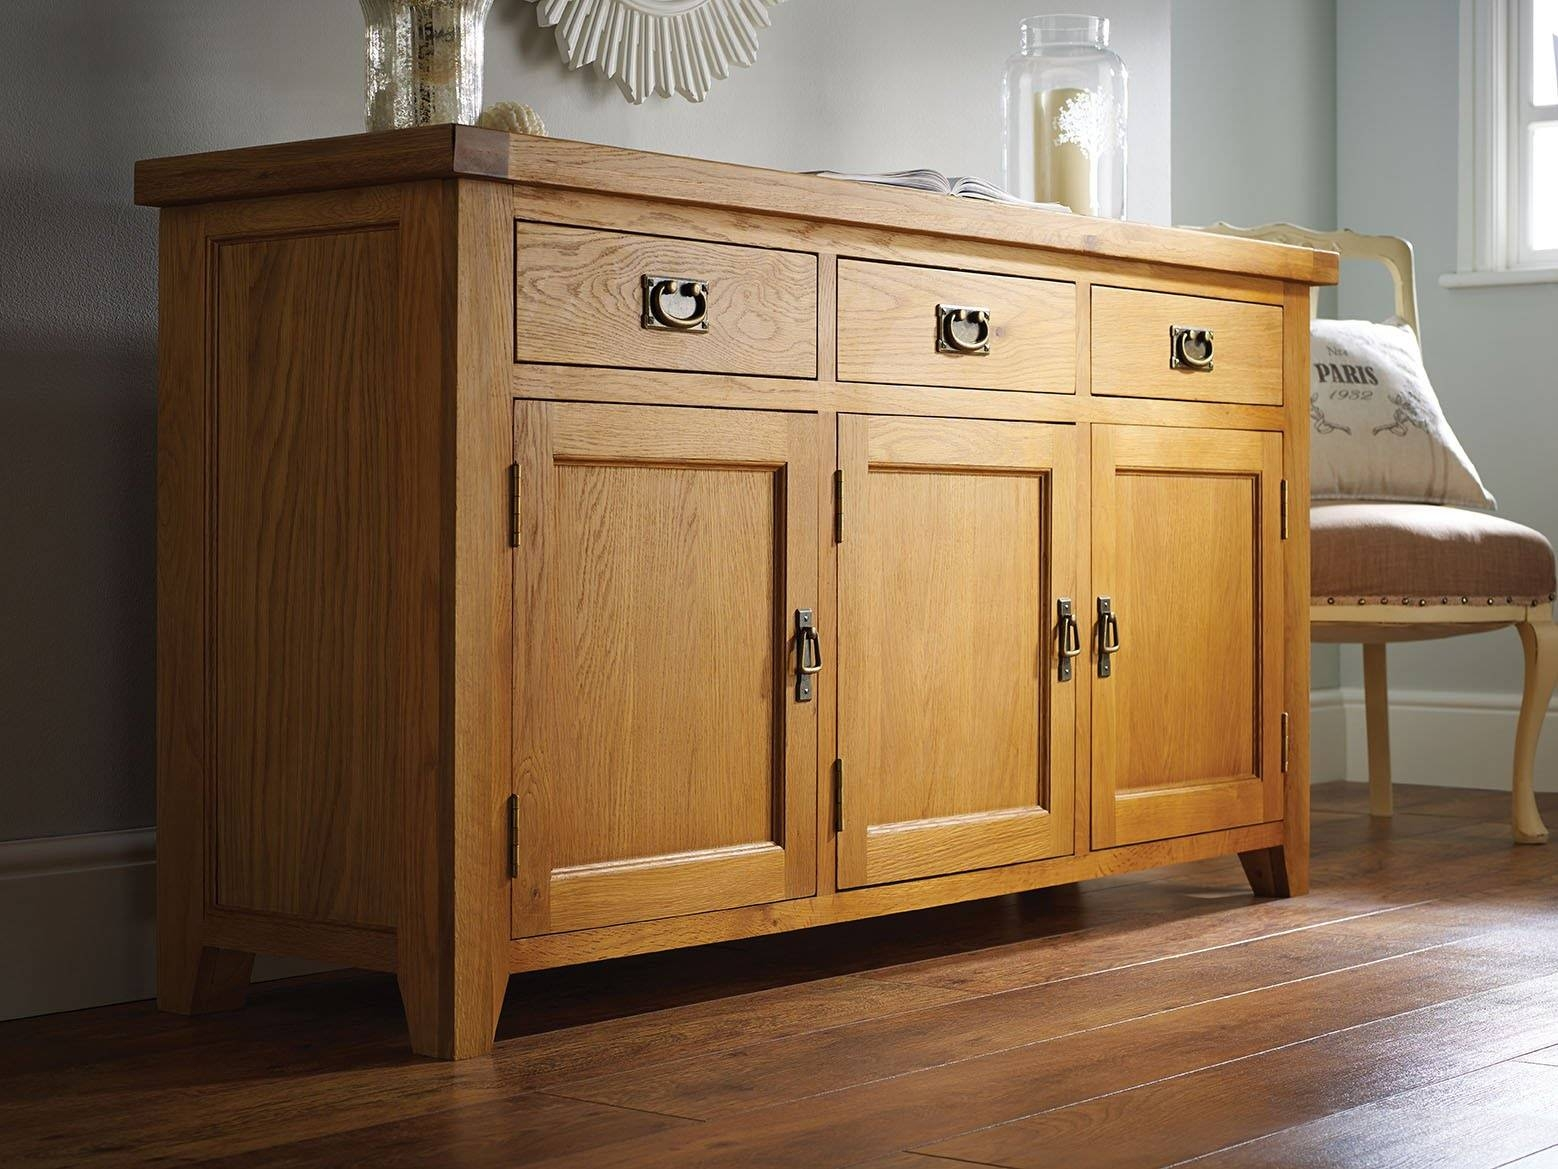 Farmhouse Country Oak Large Oak Sideboard - Just £399 - Youtube inside Farmhouse Sideboards (Image 4 of 15)